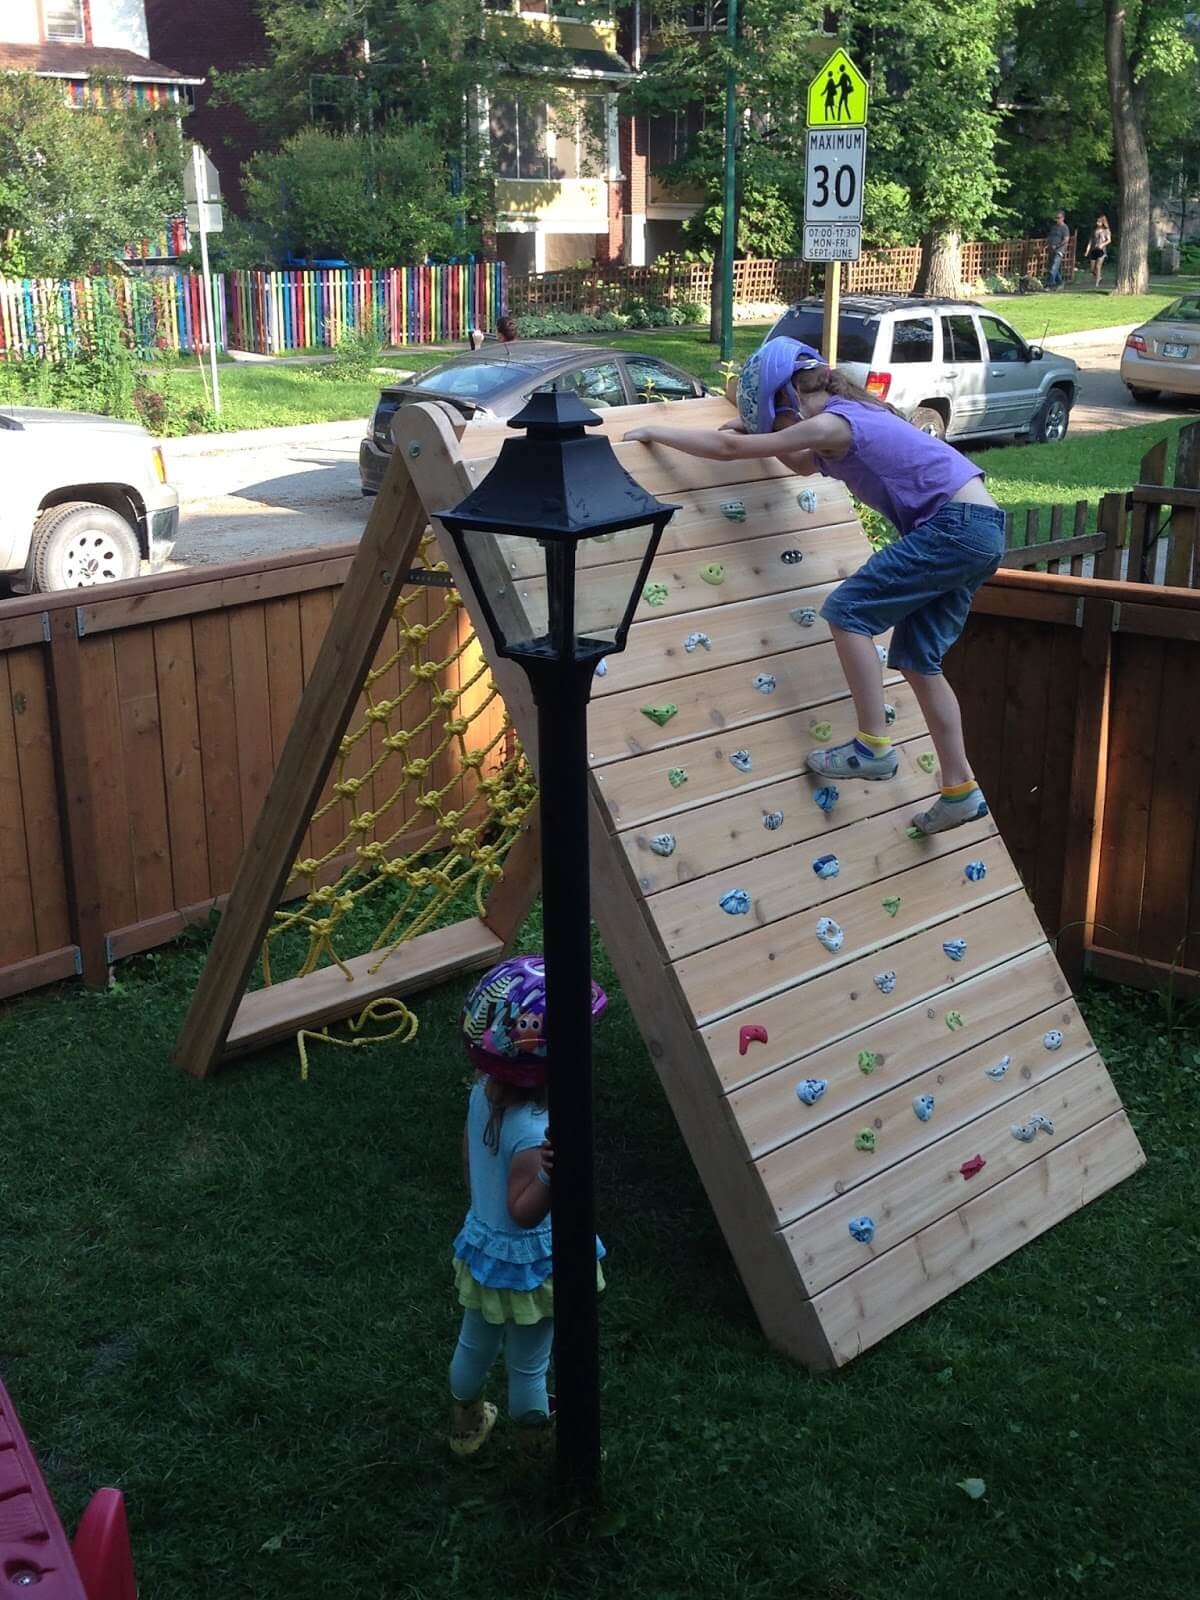 34 Best Diy Backyard Ideas And Designs For Kids In 2019 in 14 Clever Tricks of How to Upgrade Diy Backyard Ideas For Kids